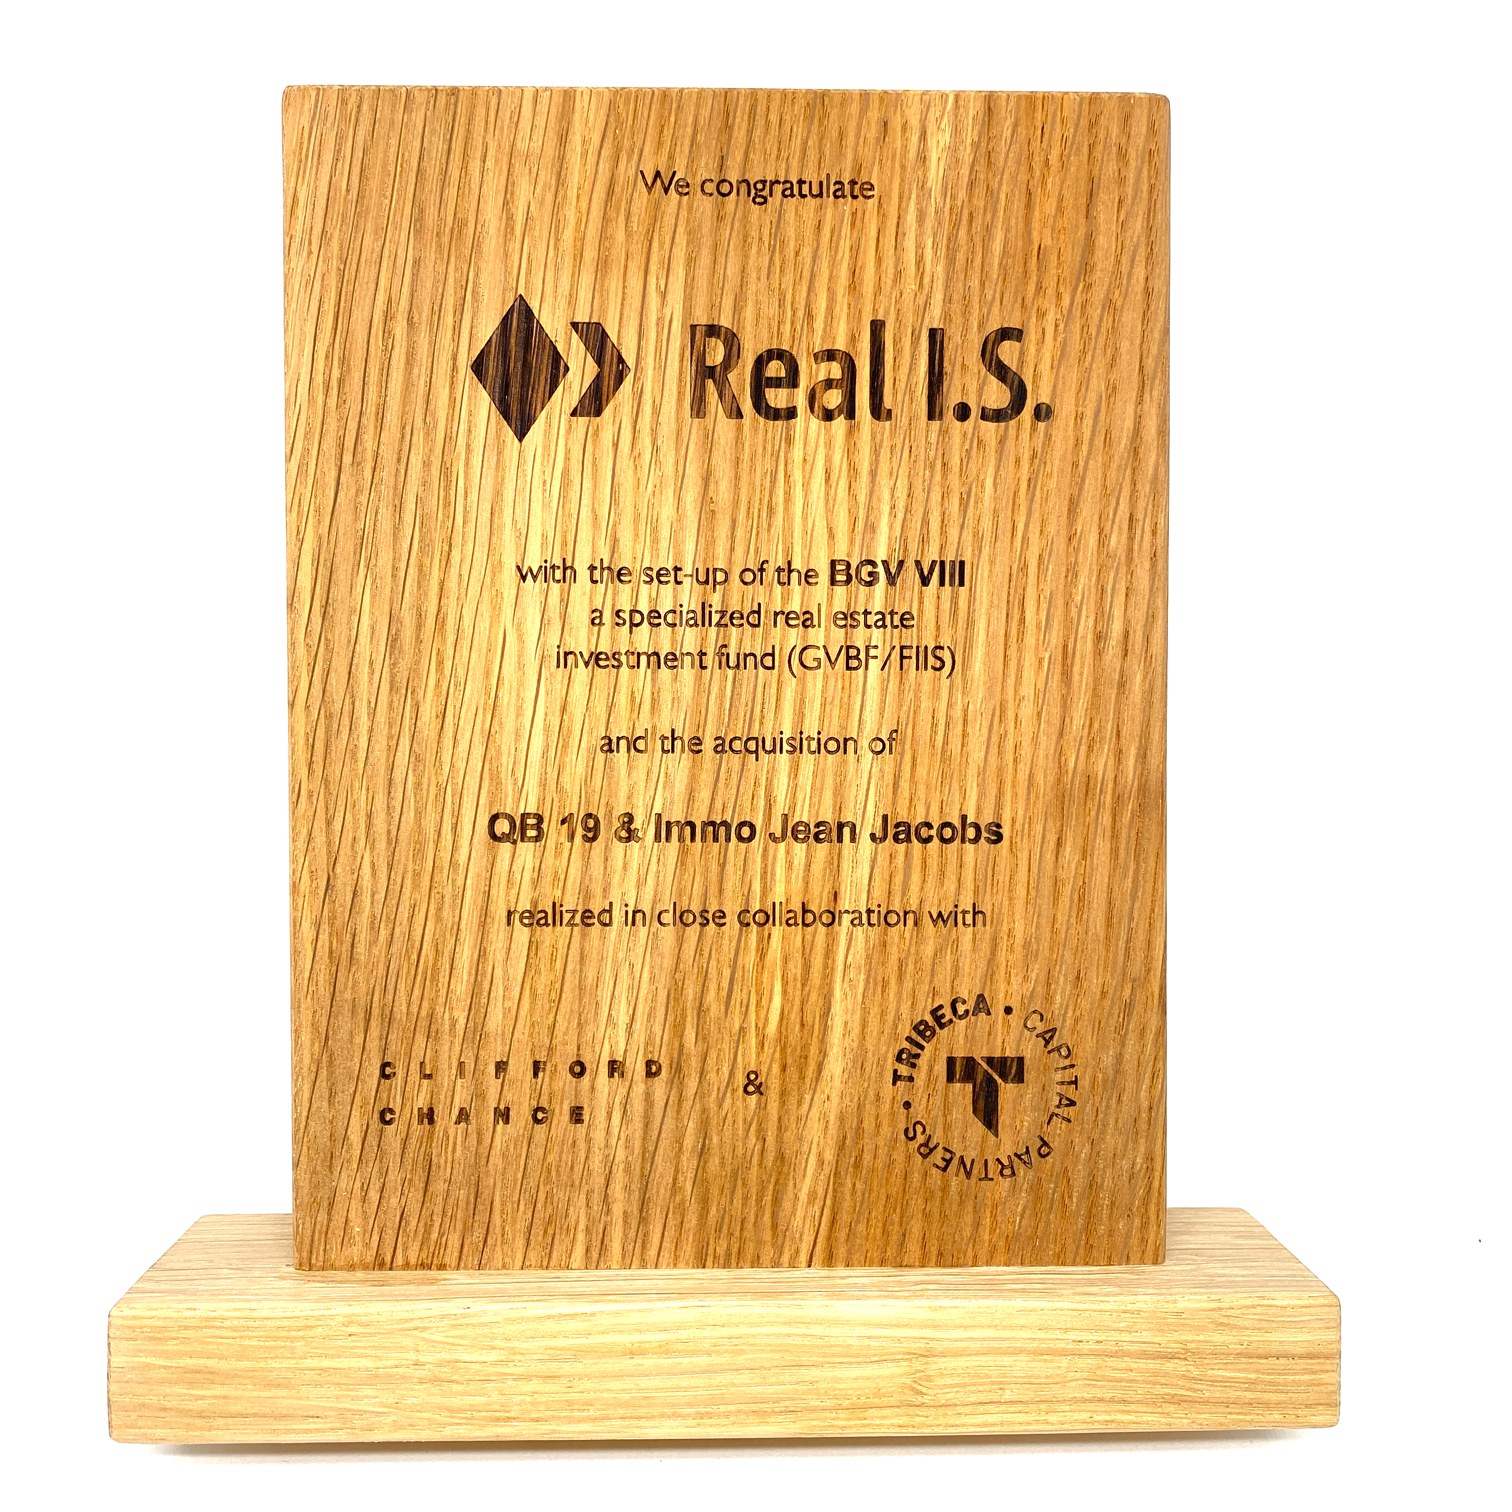 Customized wooden award with laser engraving (200 x 150 x 20 mm)